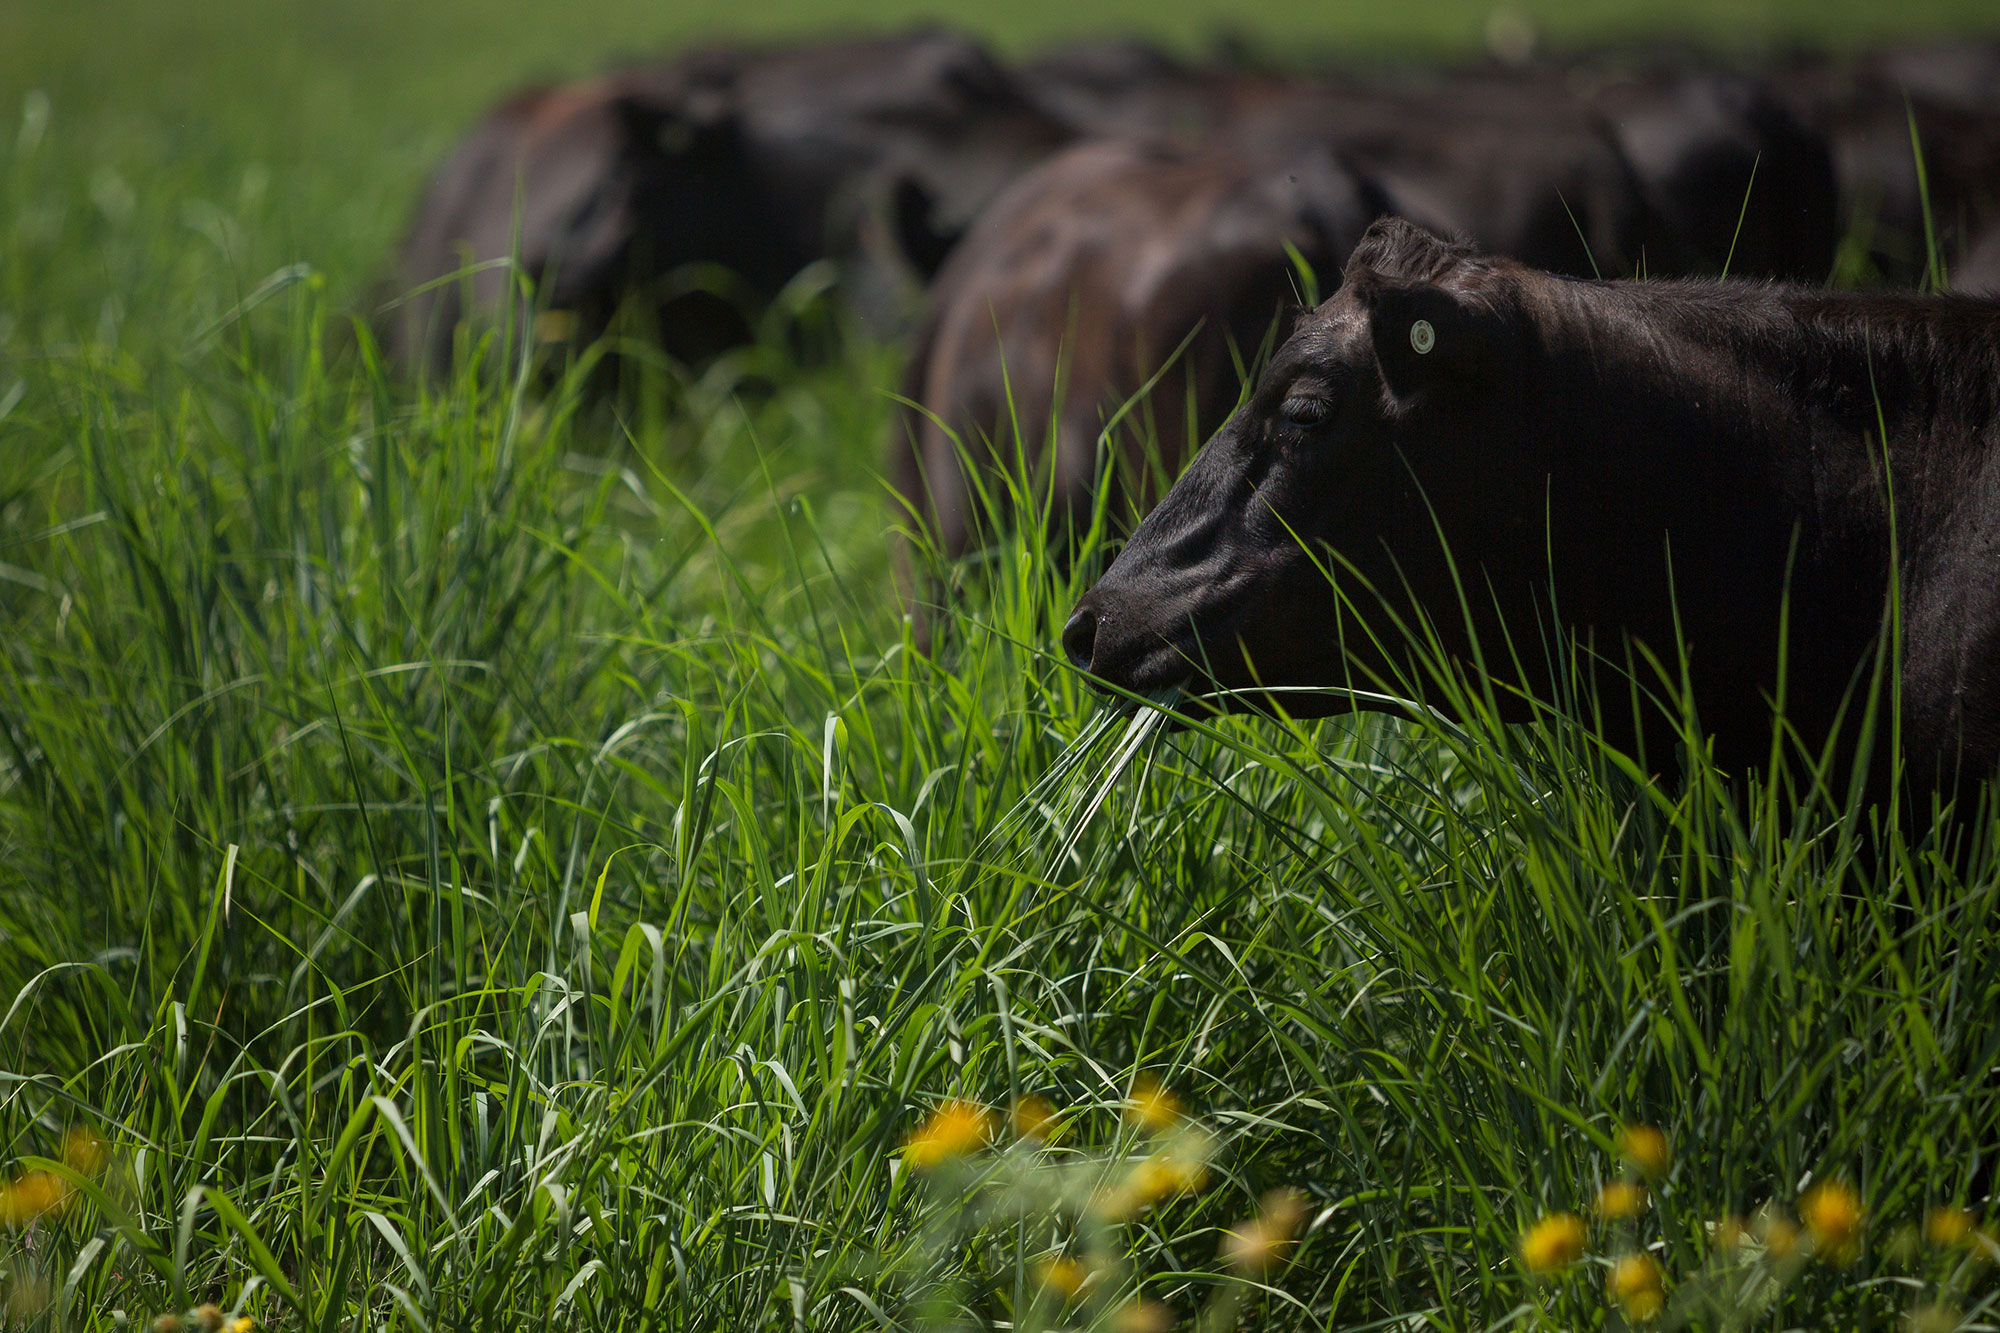 Cattle grazing in a pasture